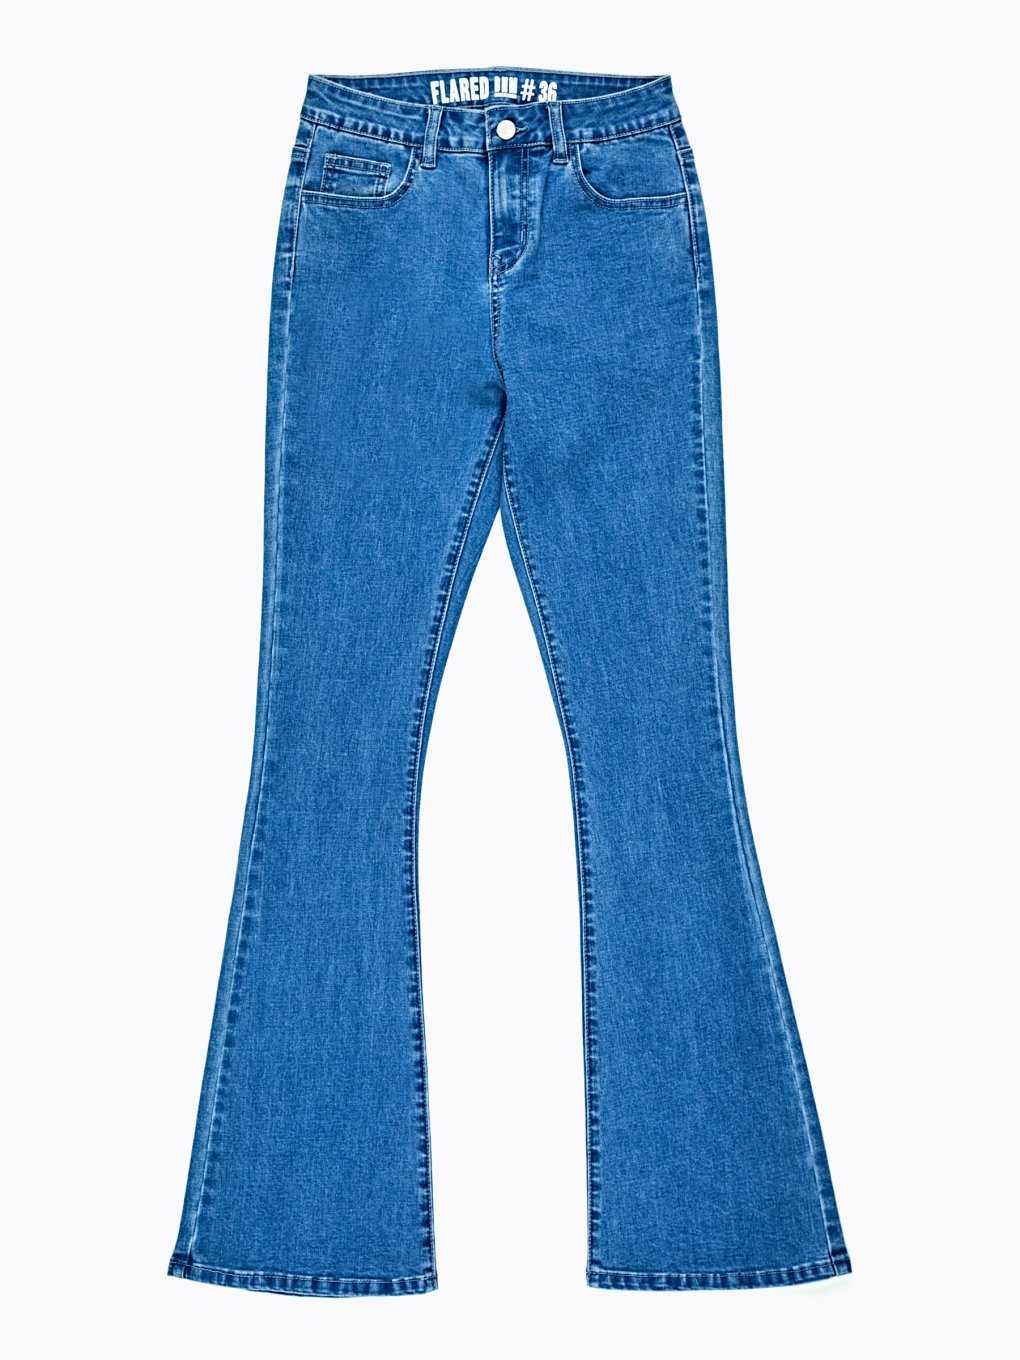 Flared jeans in mid blue wash